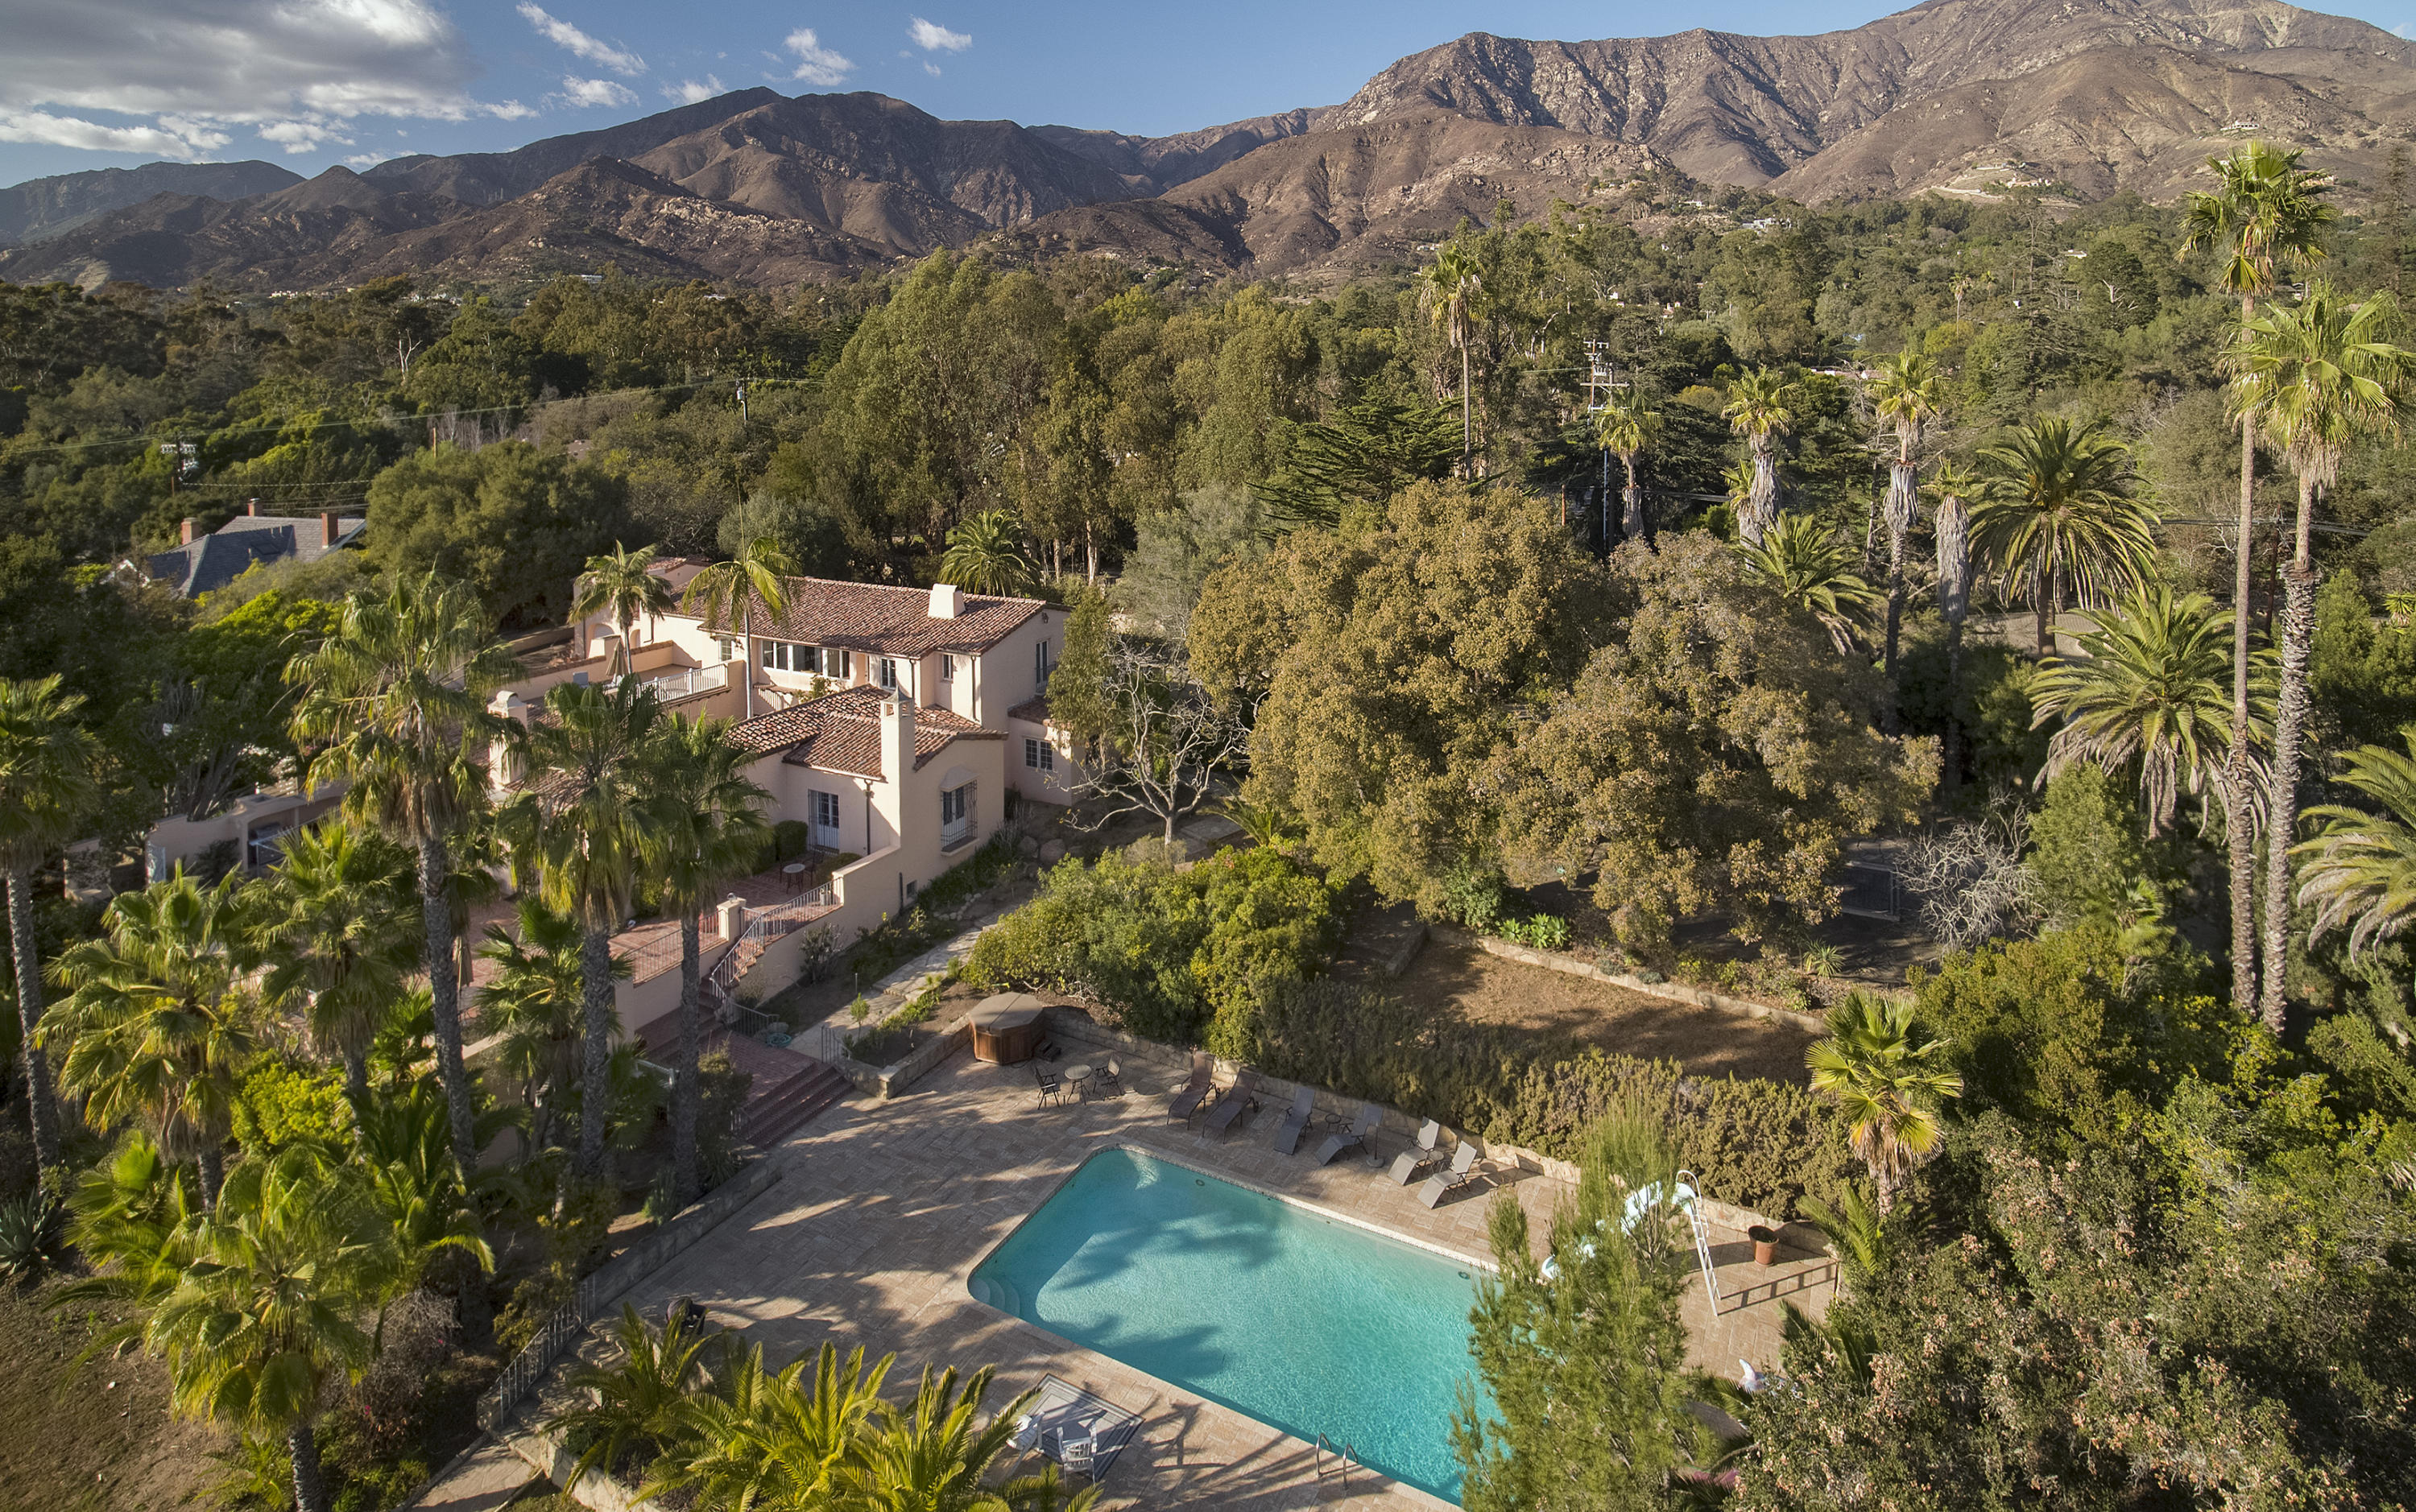 1895 E Valley Rd, Santa Barbara, California